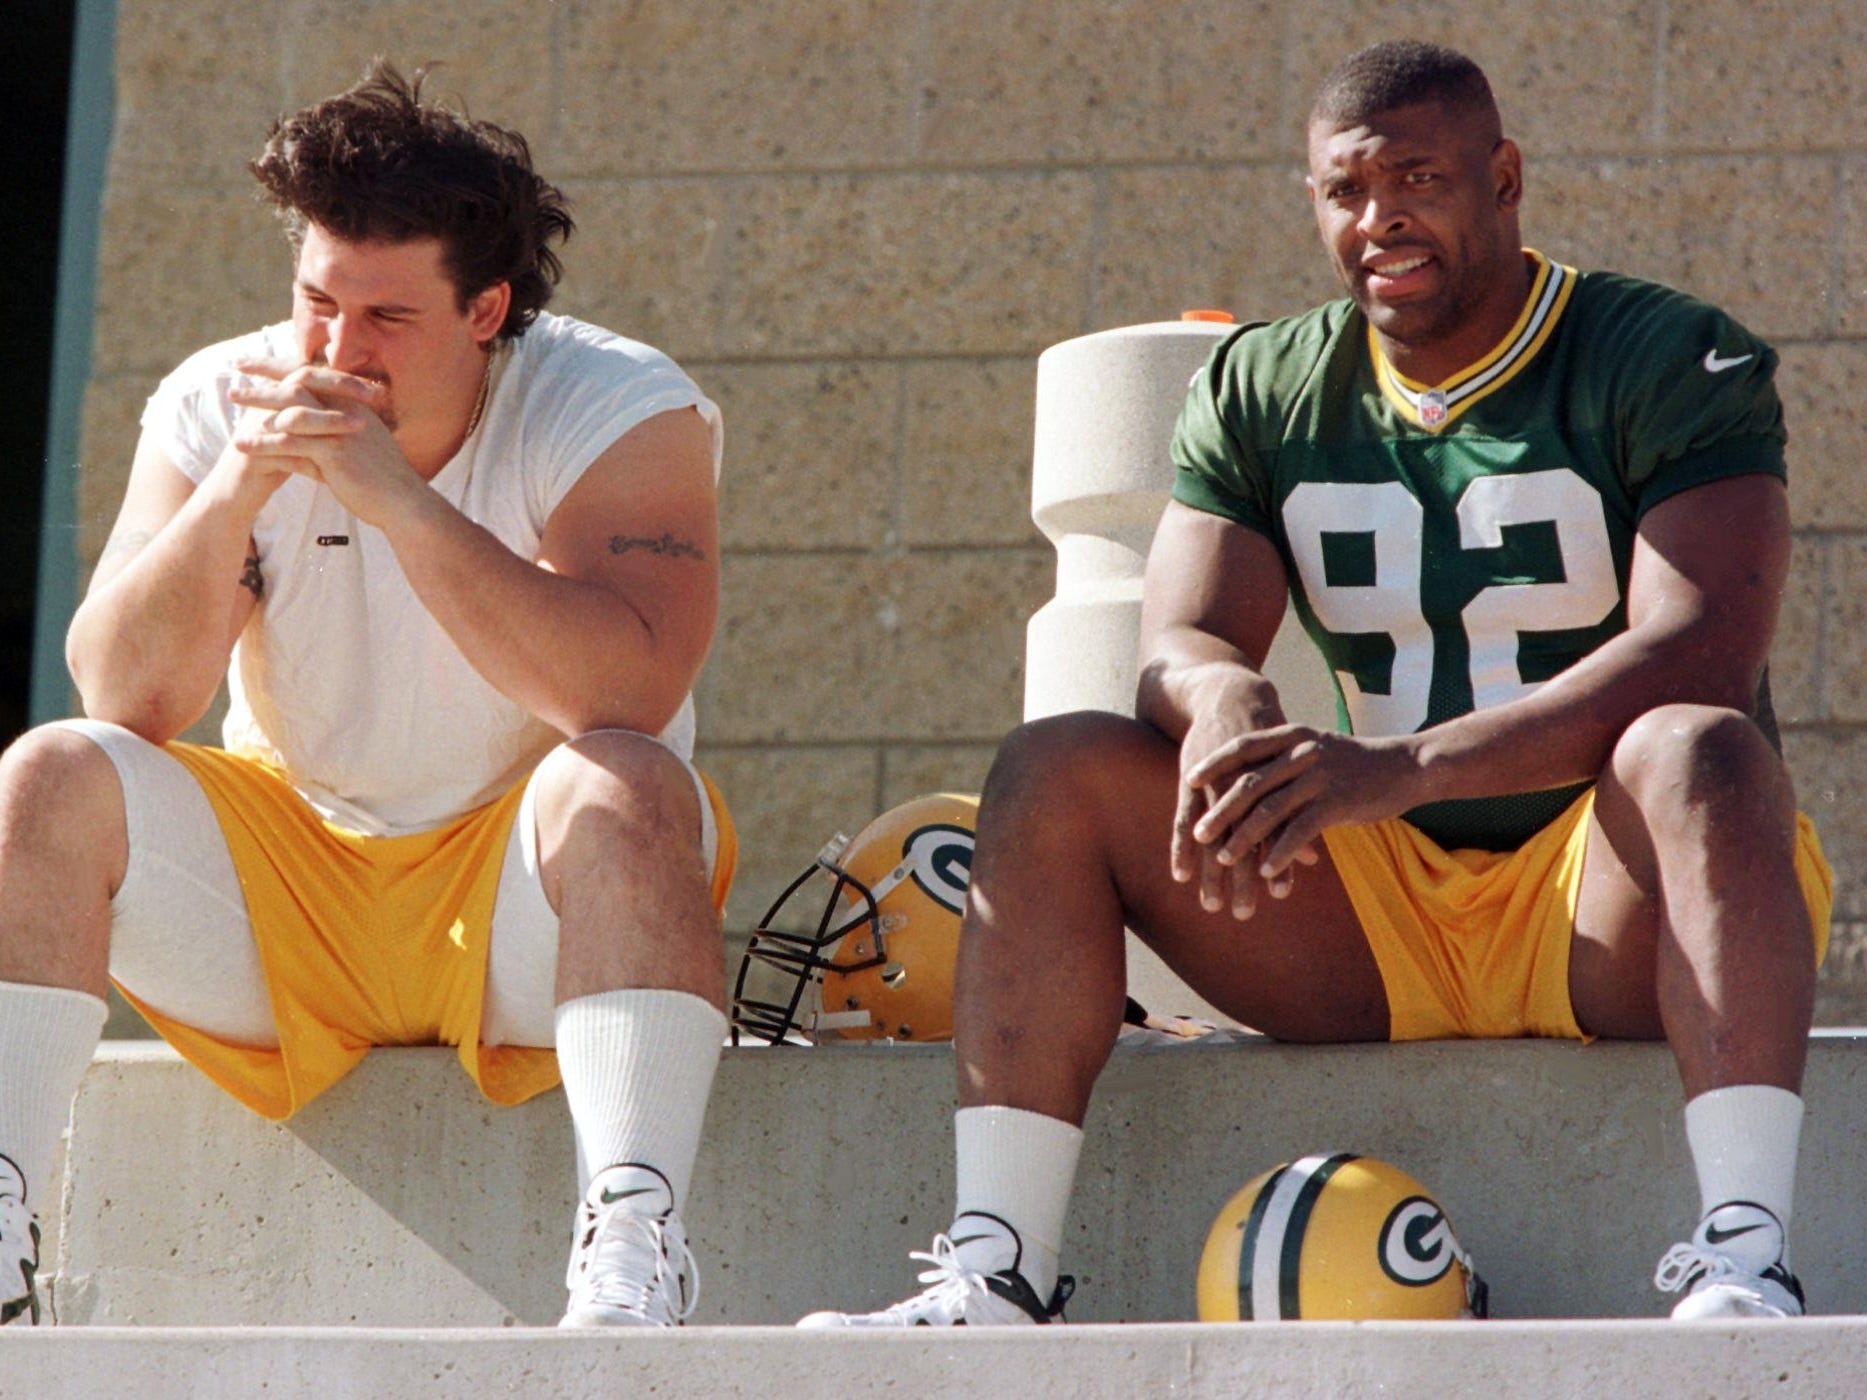 Green Bay offensive lineman Ross Verba, left, and defensive lineman Reggie White wait for practice before Super Bowl XXXII, where the defending champion Packers lost to the Denver Broncos.